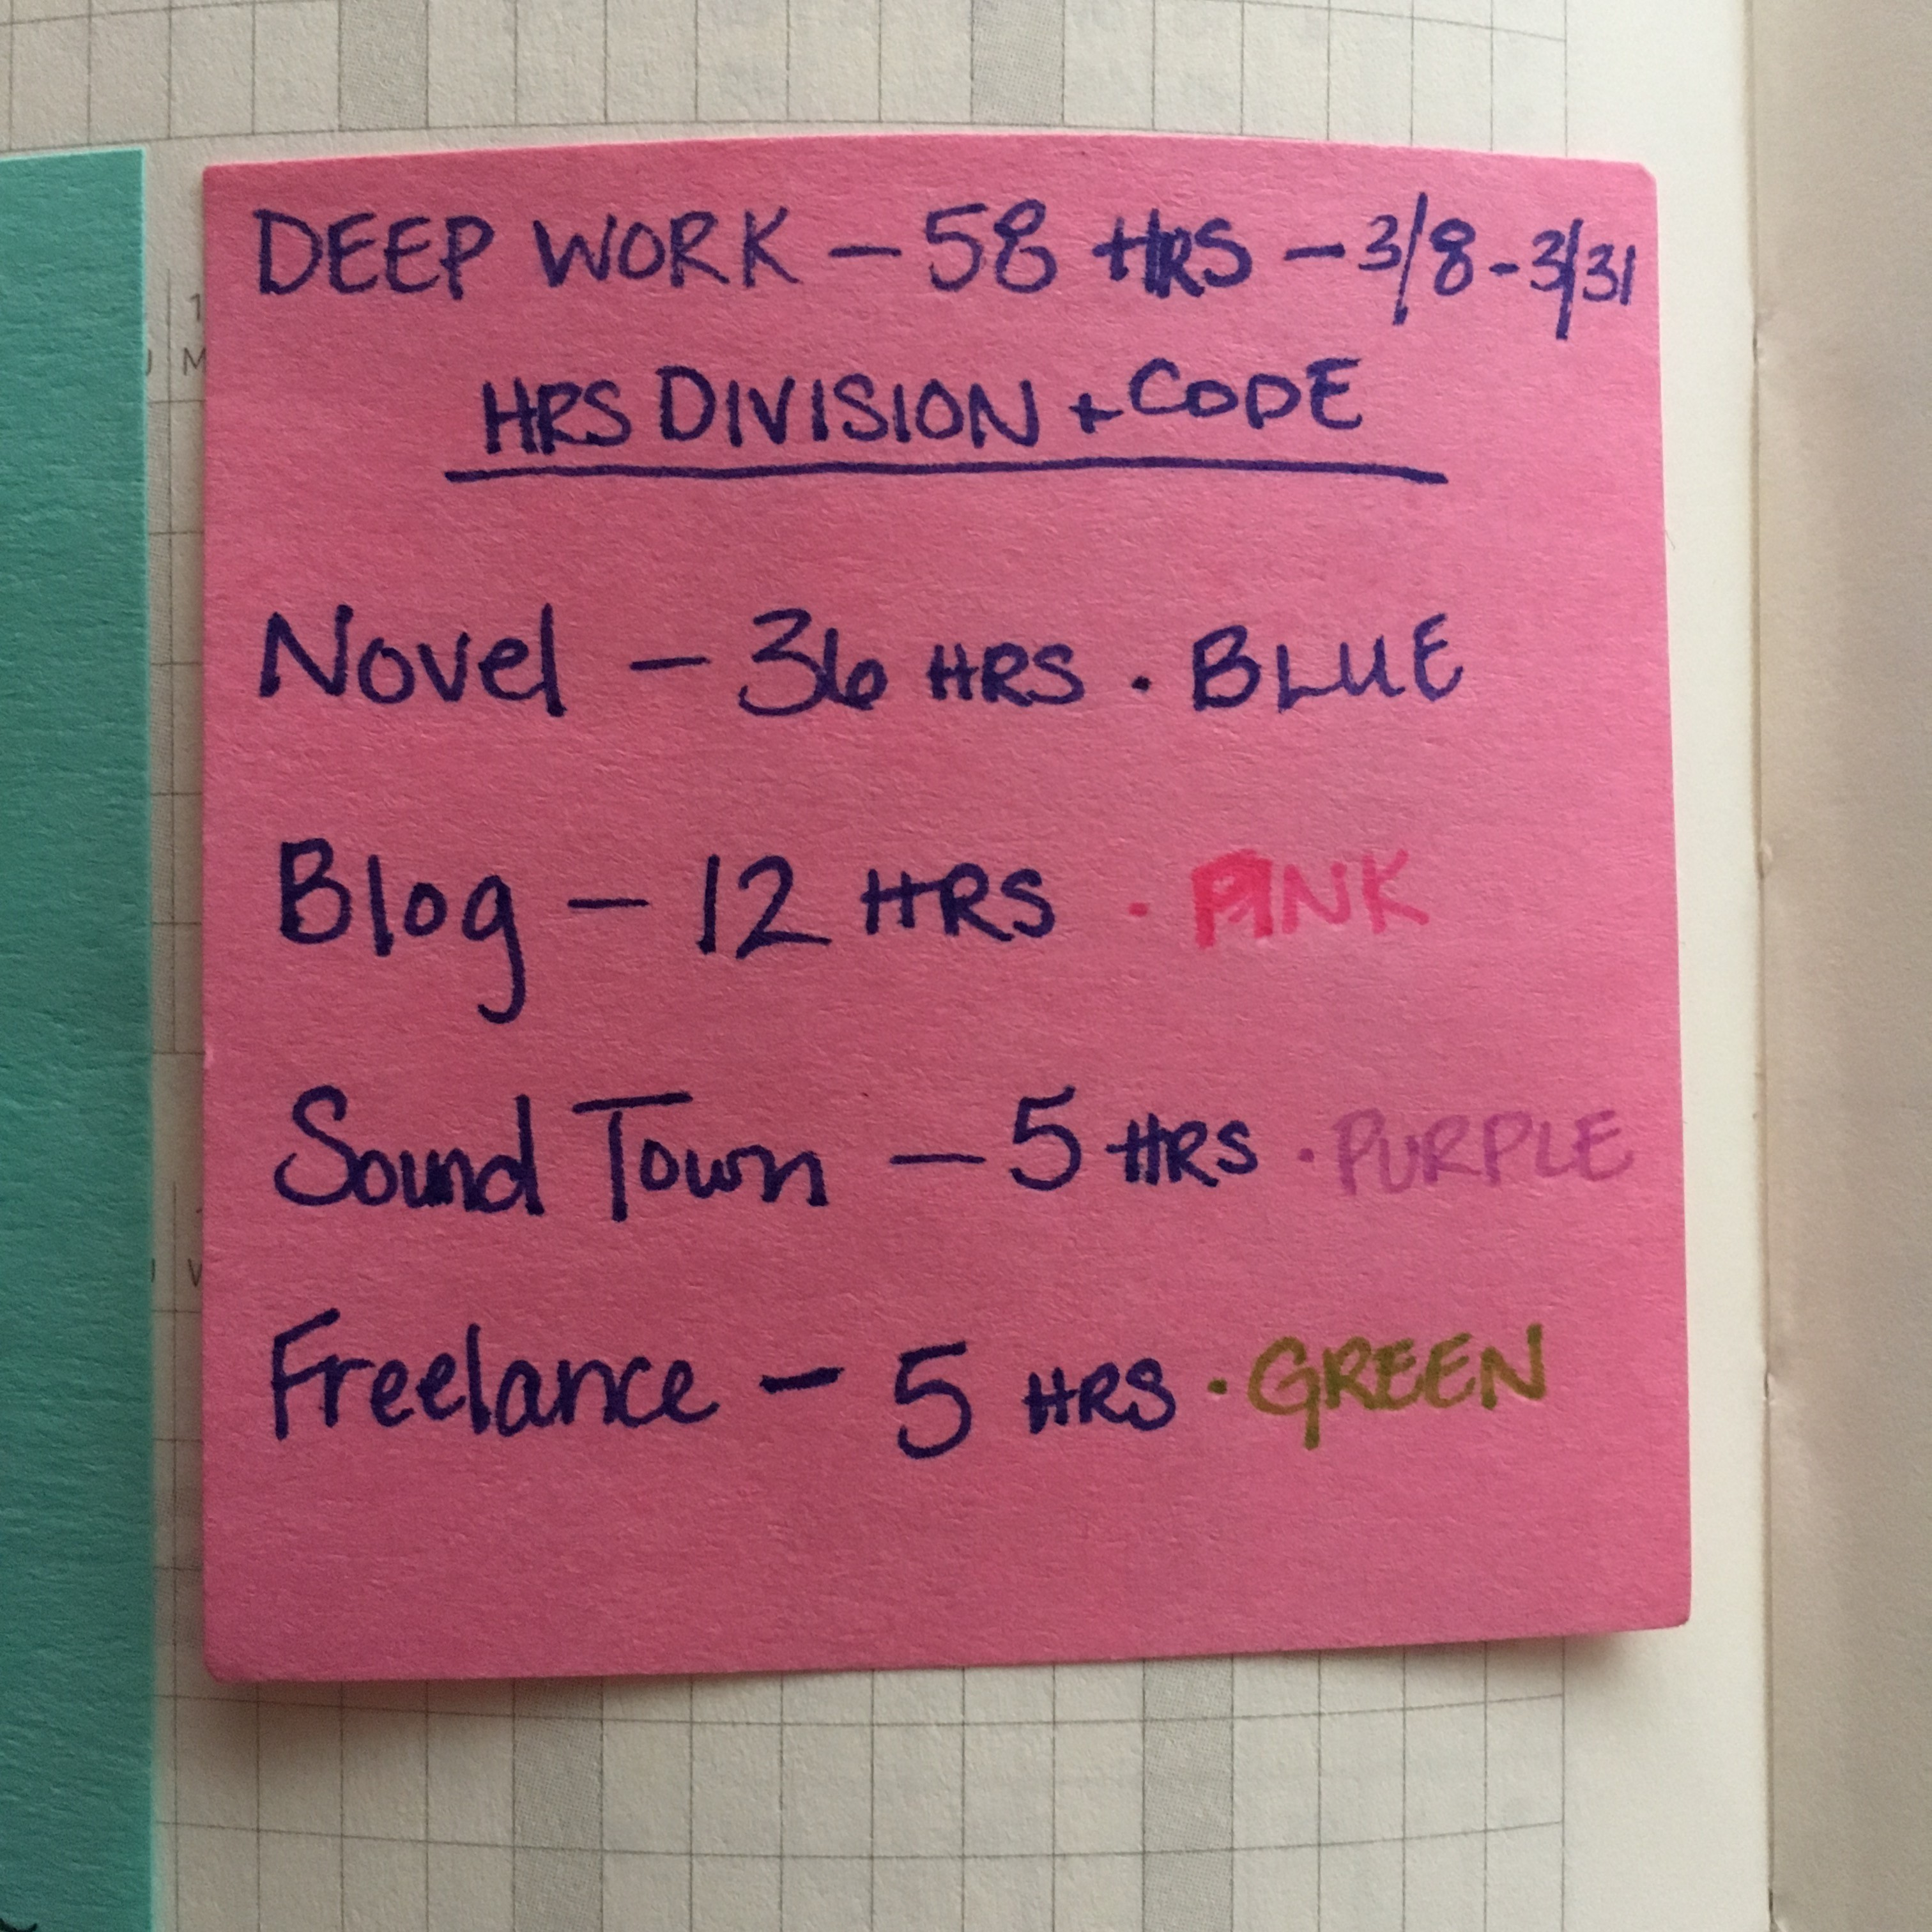 March Goals for Deep Work